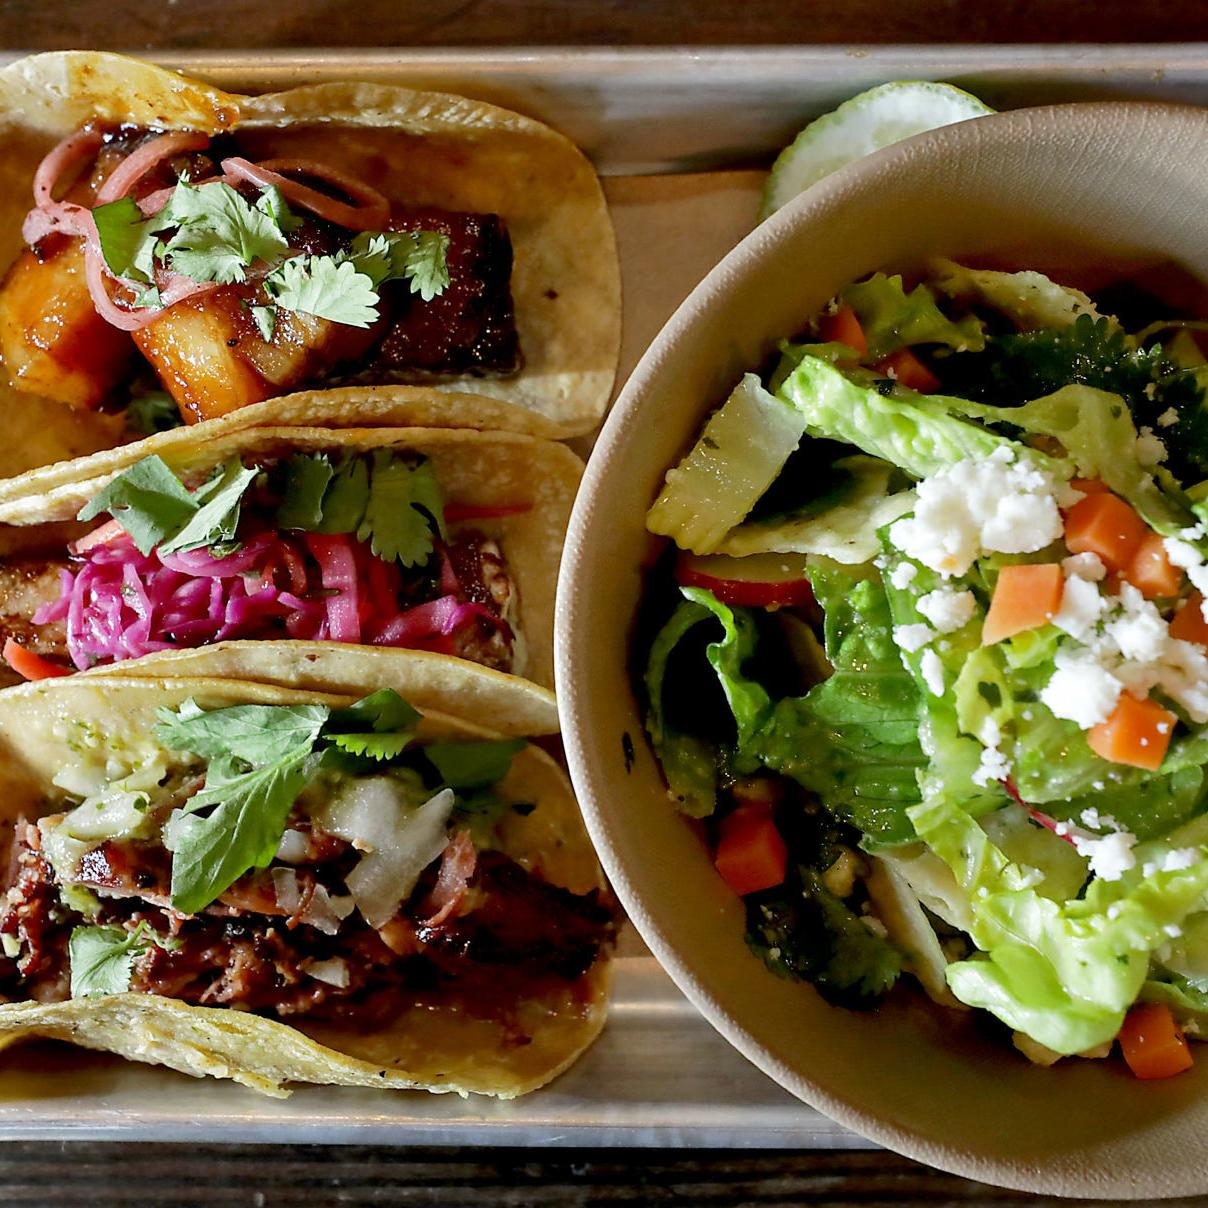 Fun-sized tacos go down easy at bartaco | Dining reviews